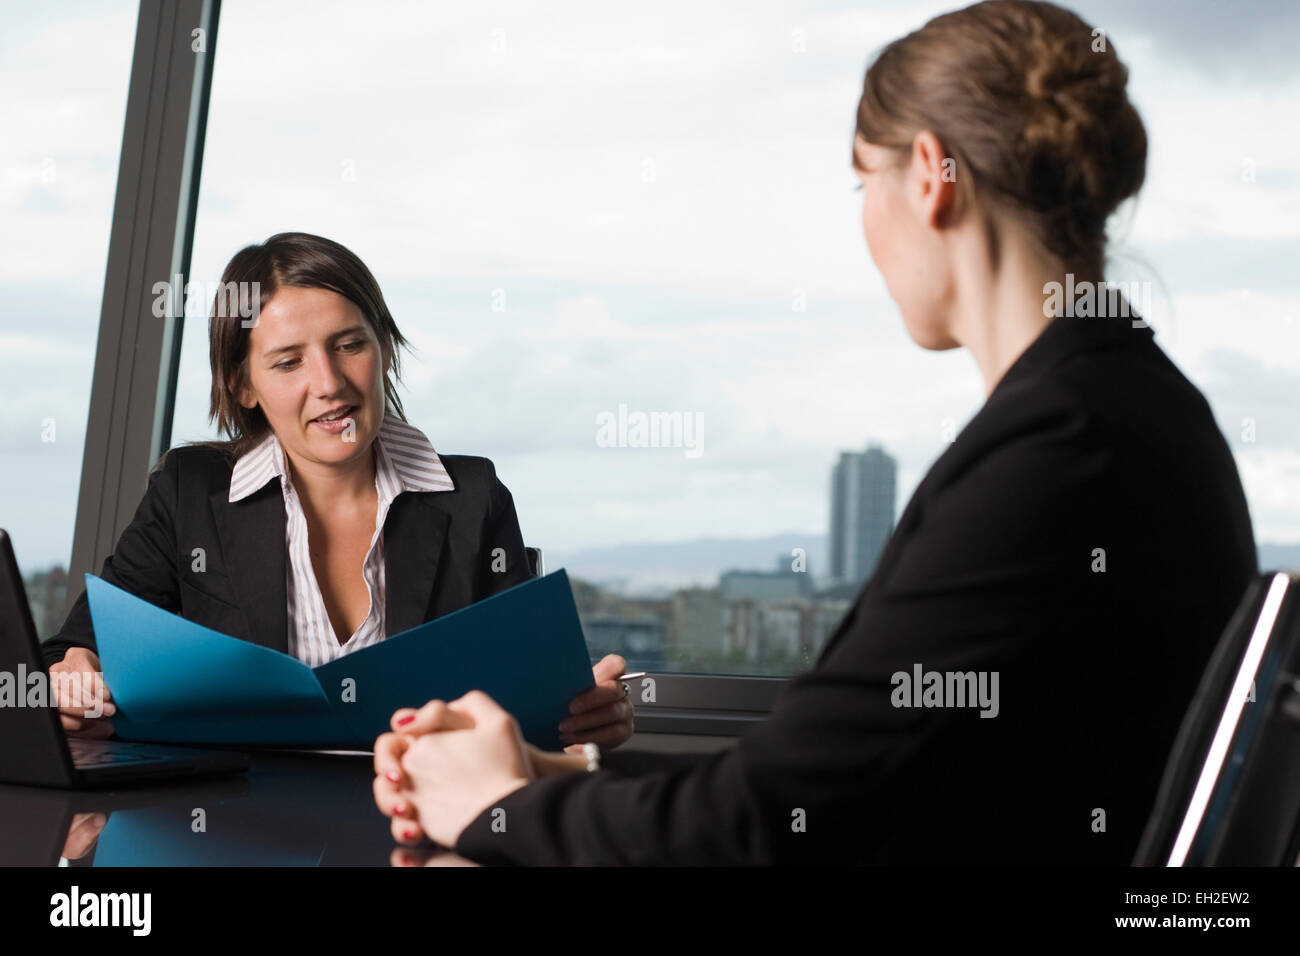 Two persons sitting at a table in office during job interview - Stock Image